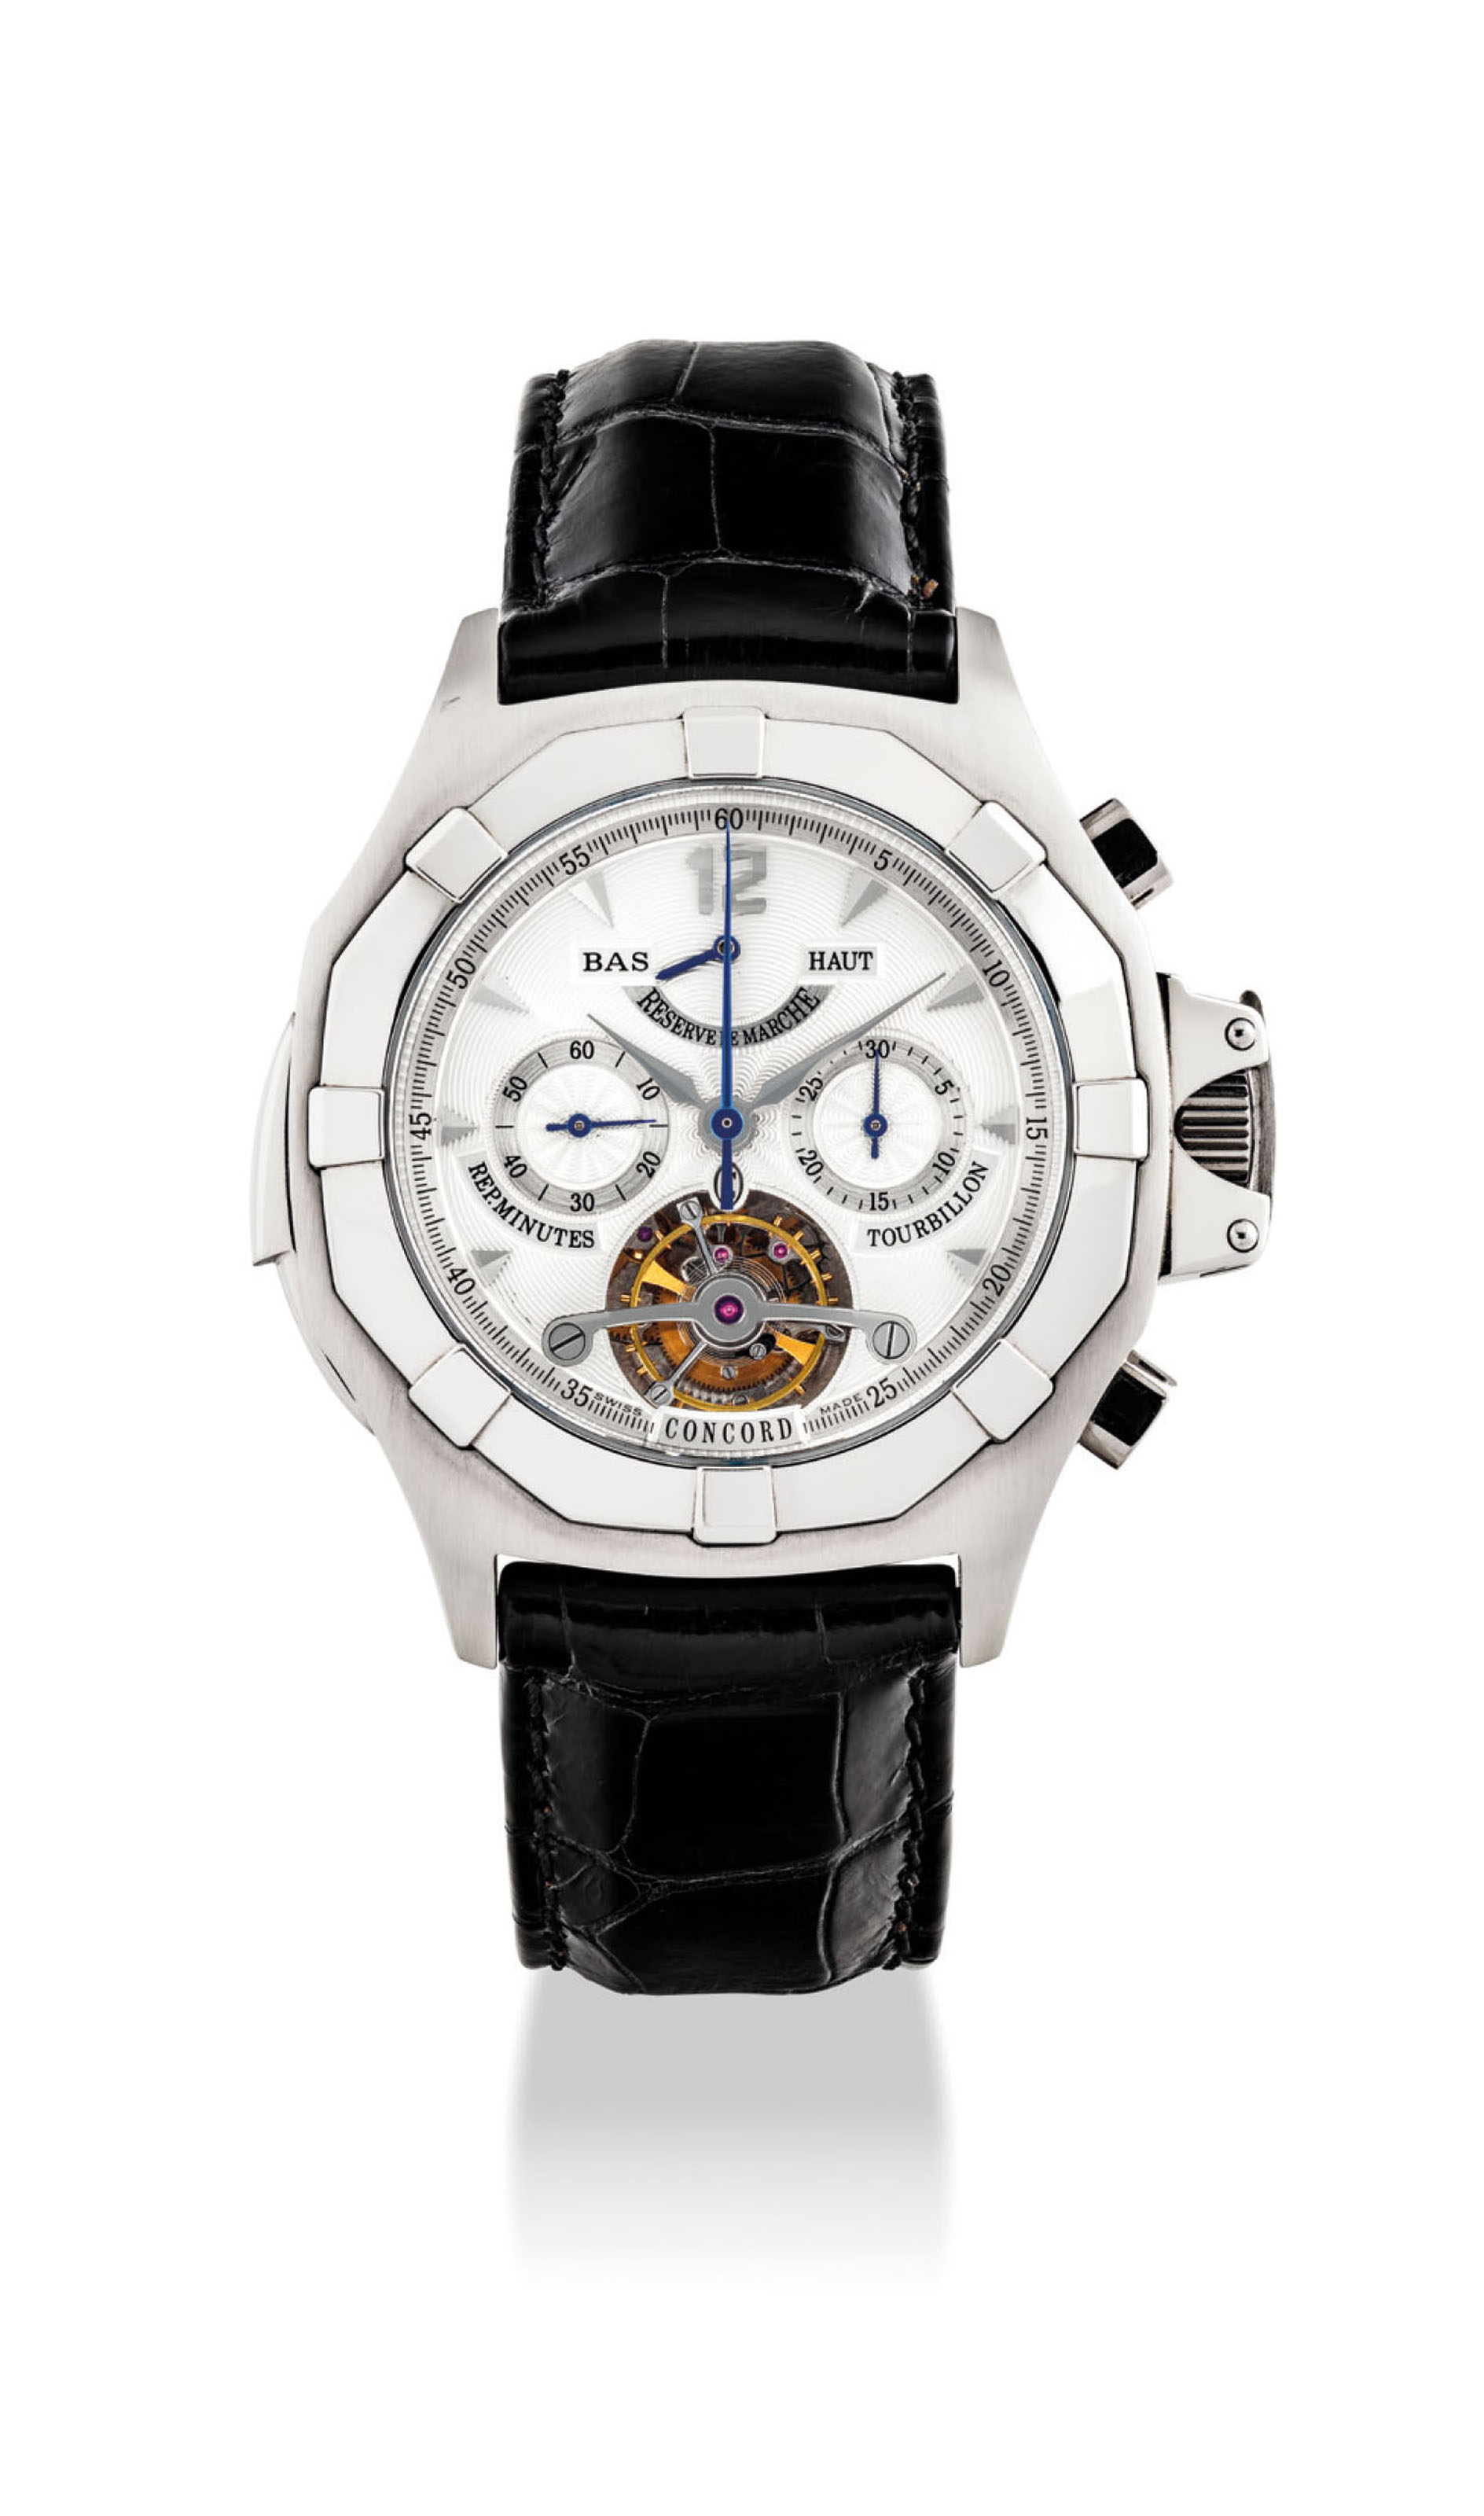 CONCORD. A UNIQUE AND EXTREMELY FINE PLATINUM OCTAGONAL MINUTE REPEATING TOURBILLON CHRONOGRAPH WRISTWATCH WITH POWER RESERVE